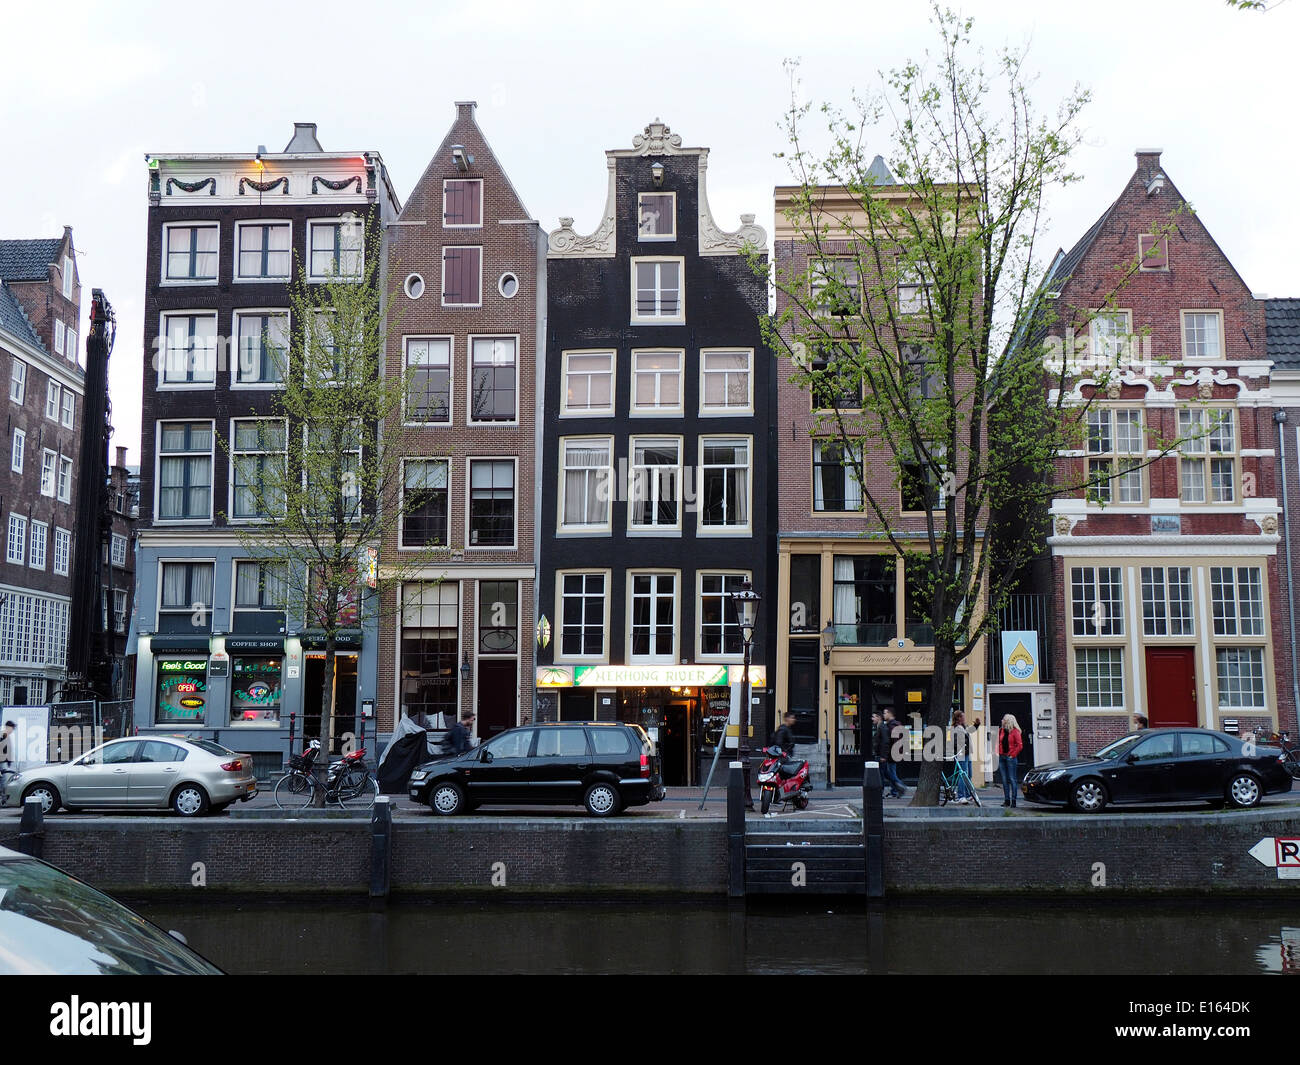 Narrowest House In The World Very Narrow House In Amsterdam Stock Photo Royalty Free